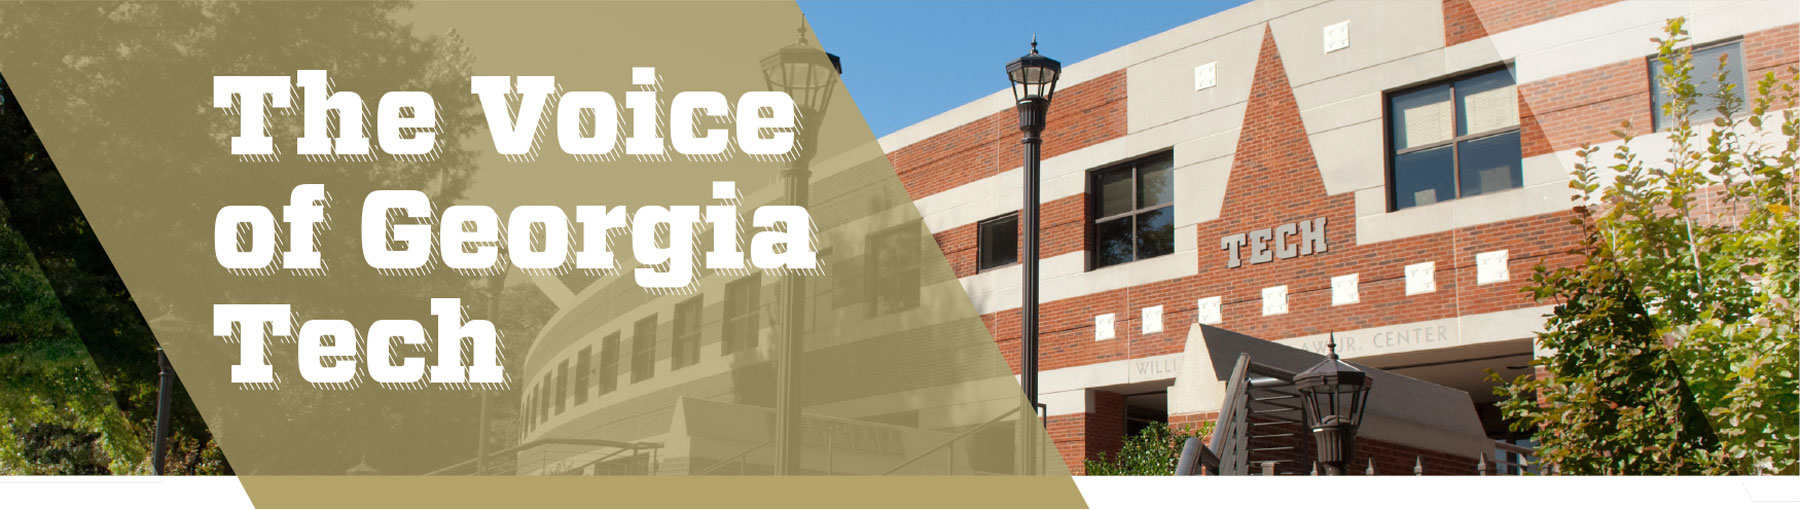 "Georgia Tech's Wardlaw Center with text, ""The Voice of Georgia Tech"""